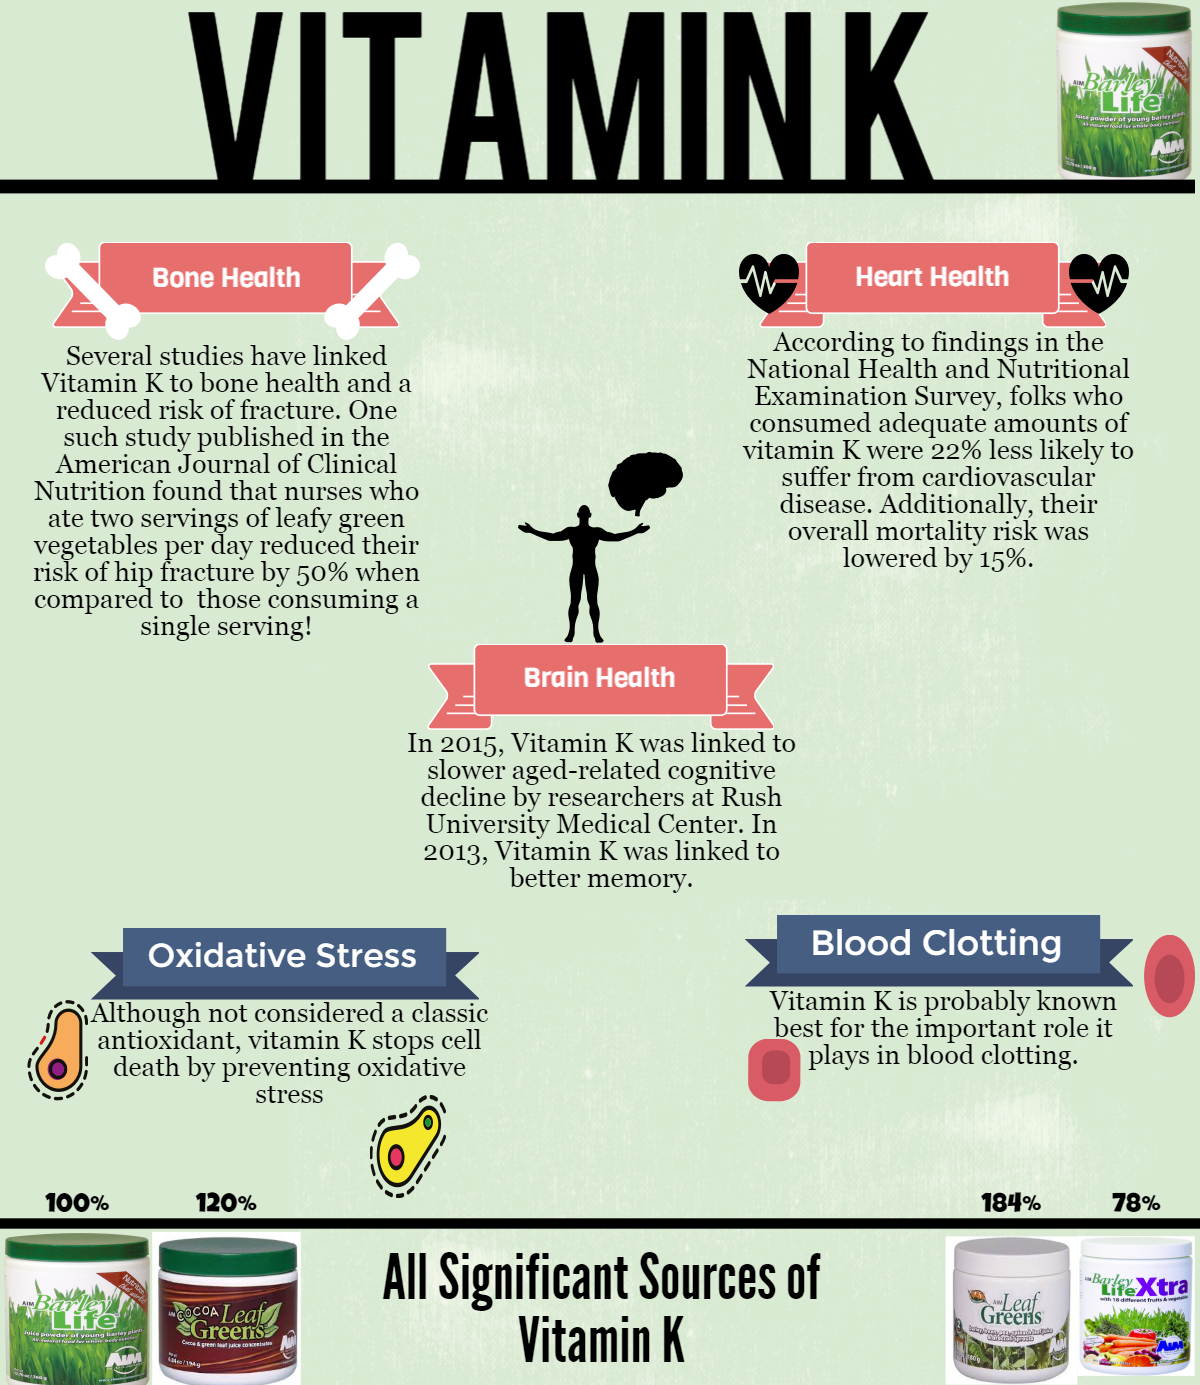 vitamin k fact sheet Infonet wwwaidsinfonetorg fact sheet number 801 vitamins & minerals why are vitamins and minerals important vitamins and minerals are sometimes called micronutrients our bodies need them, in small amounts, to support the  vitamin k for clotting and bone formation.